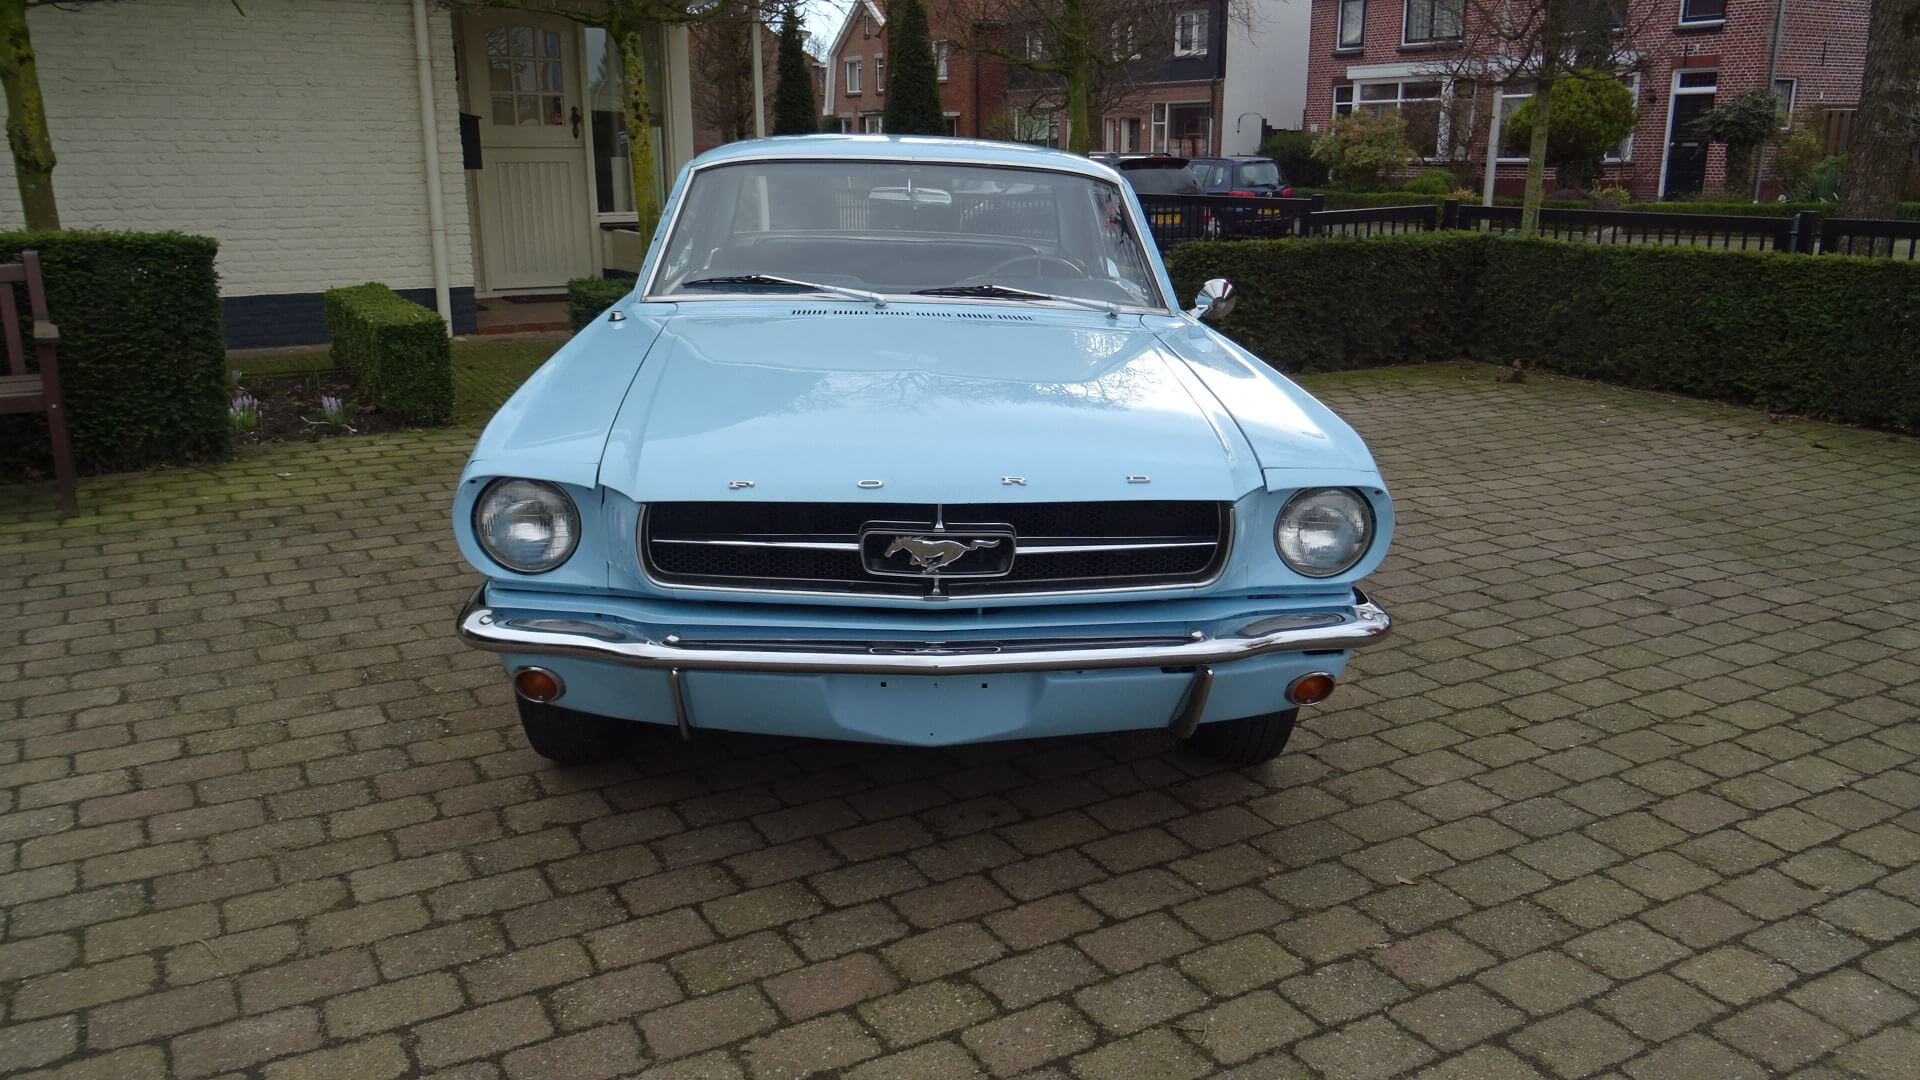 65 ford mustang coupe union jack vintage cars - Ford mustang vintage ...